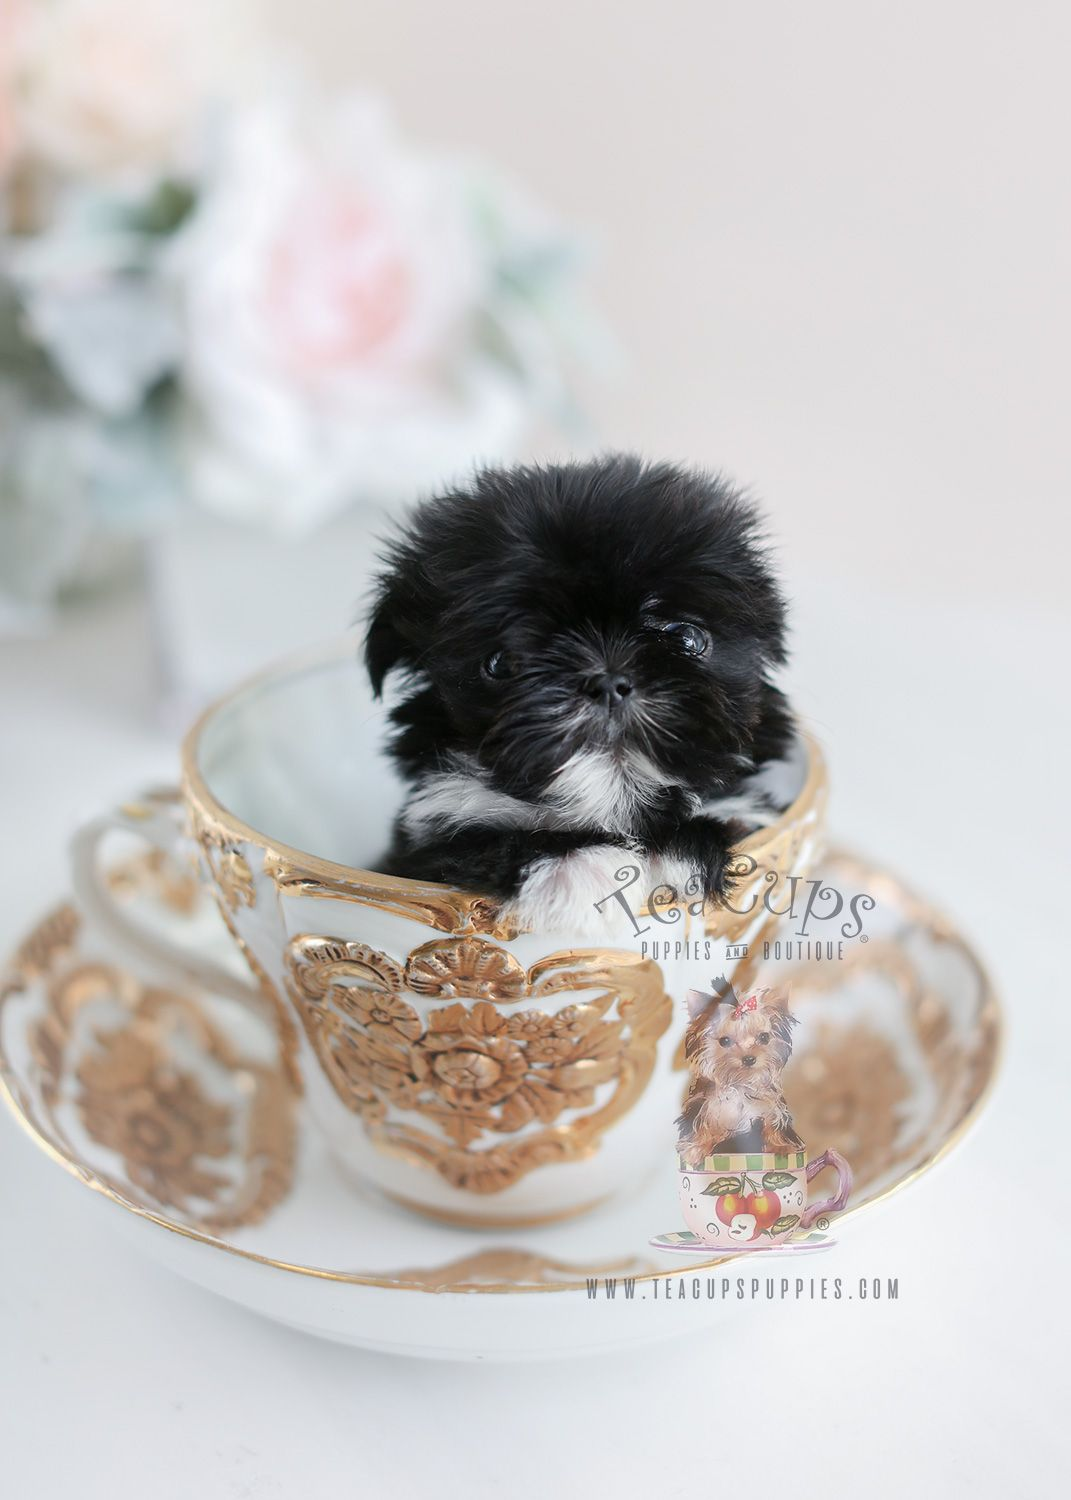 Tiny Imperial Shih Tzu By Teacup Puppies Boutique Shihtzu Imperialshihtzu Teacuppuppy Teacuppuppies Teacup Puppies Shih Tzu Puppy Puppies For Sale